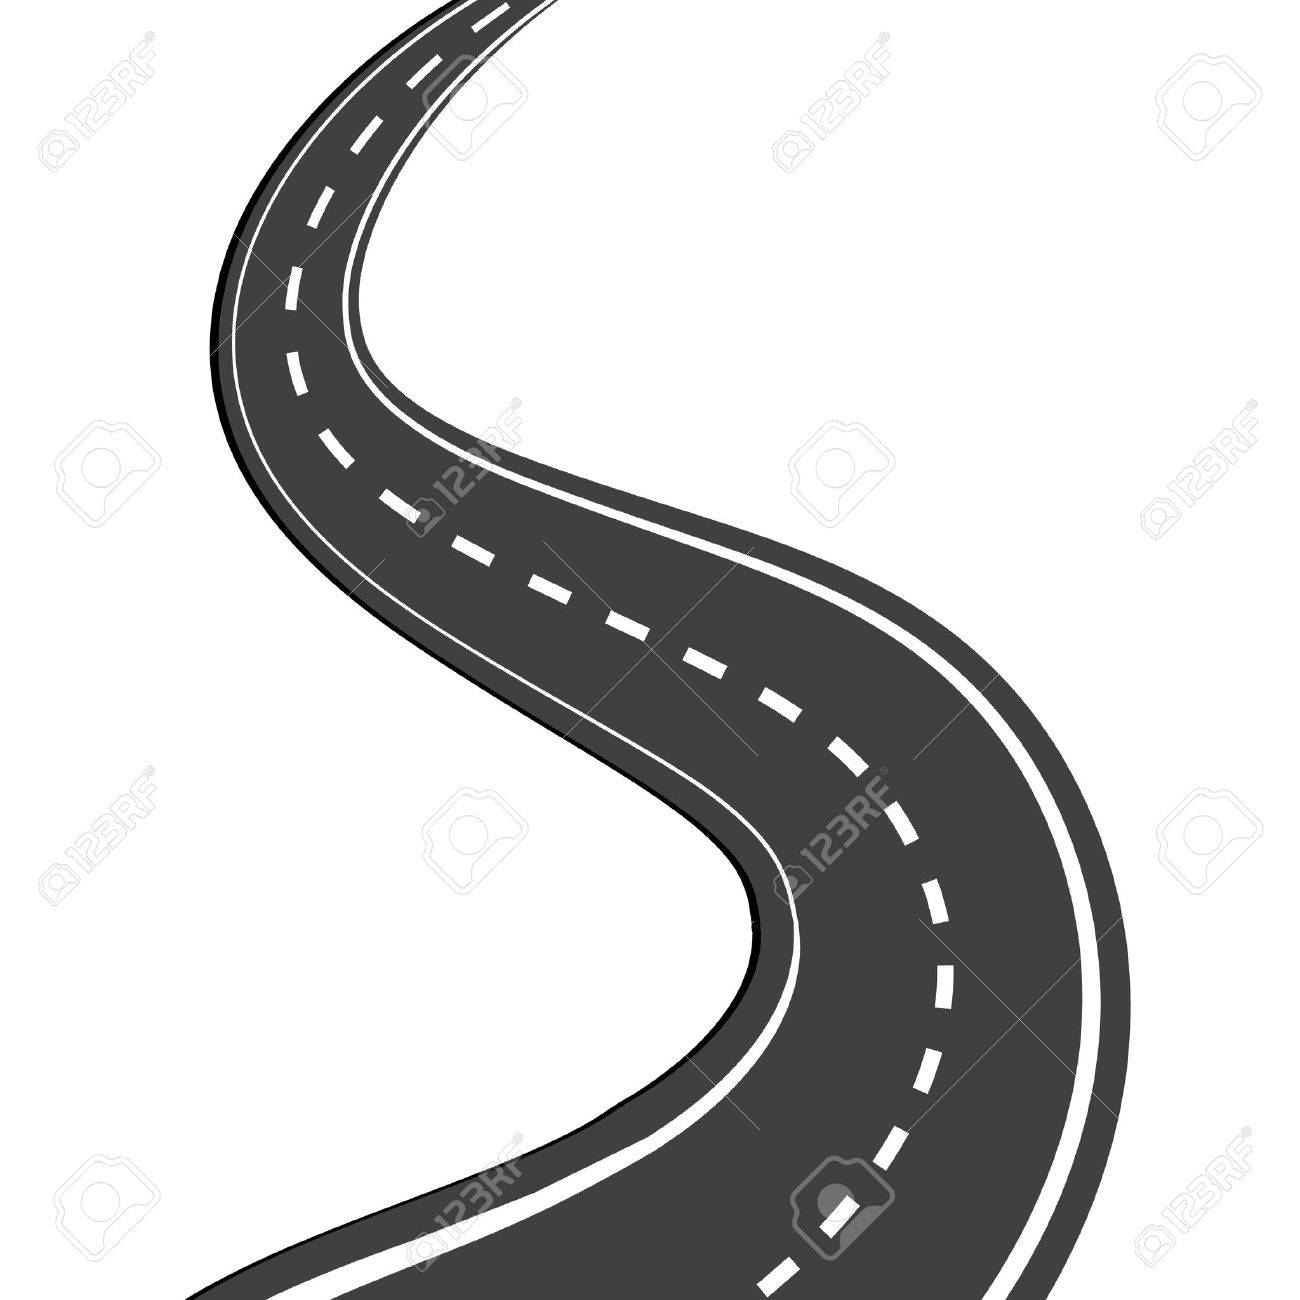 Windy road clipart no background royalty free library Winding Road Drawing | Free download best Winding Road ... royalty free library